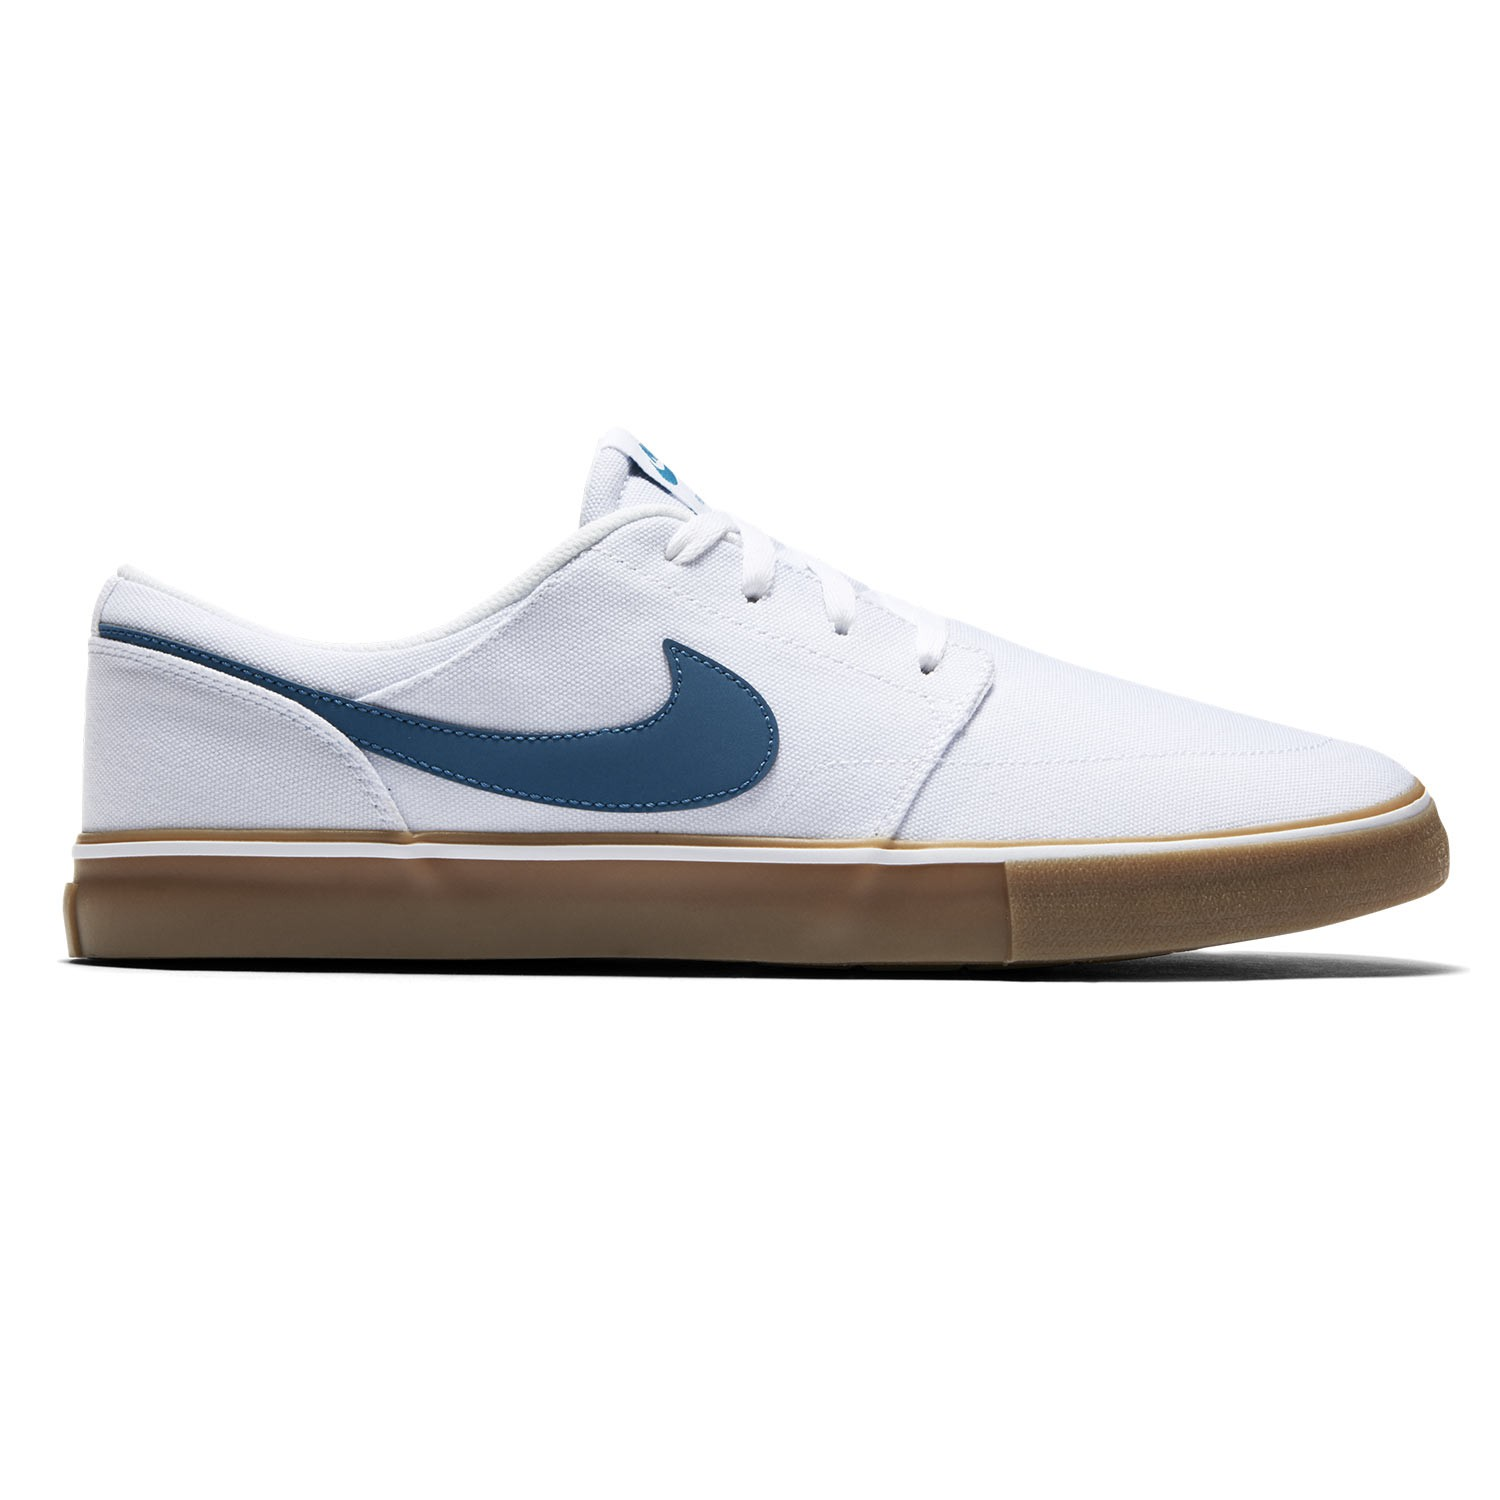 Tenisky Nike SB Solarsoft Portmore Ii Canvas white/industrial blue-brown